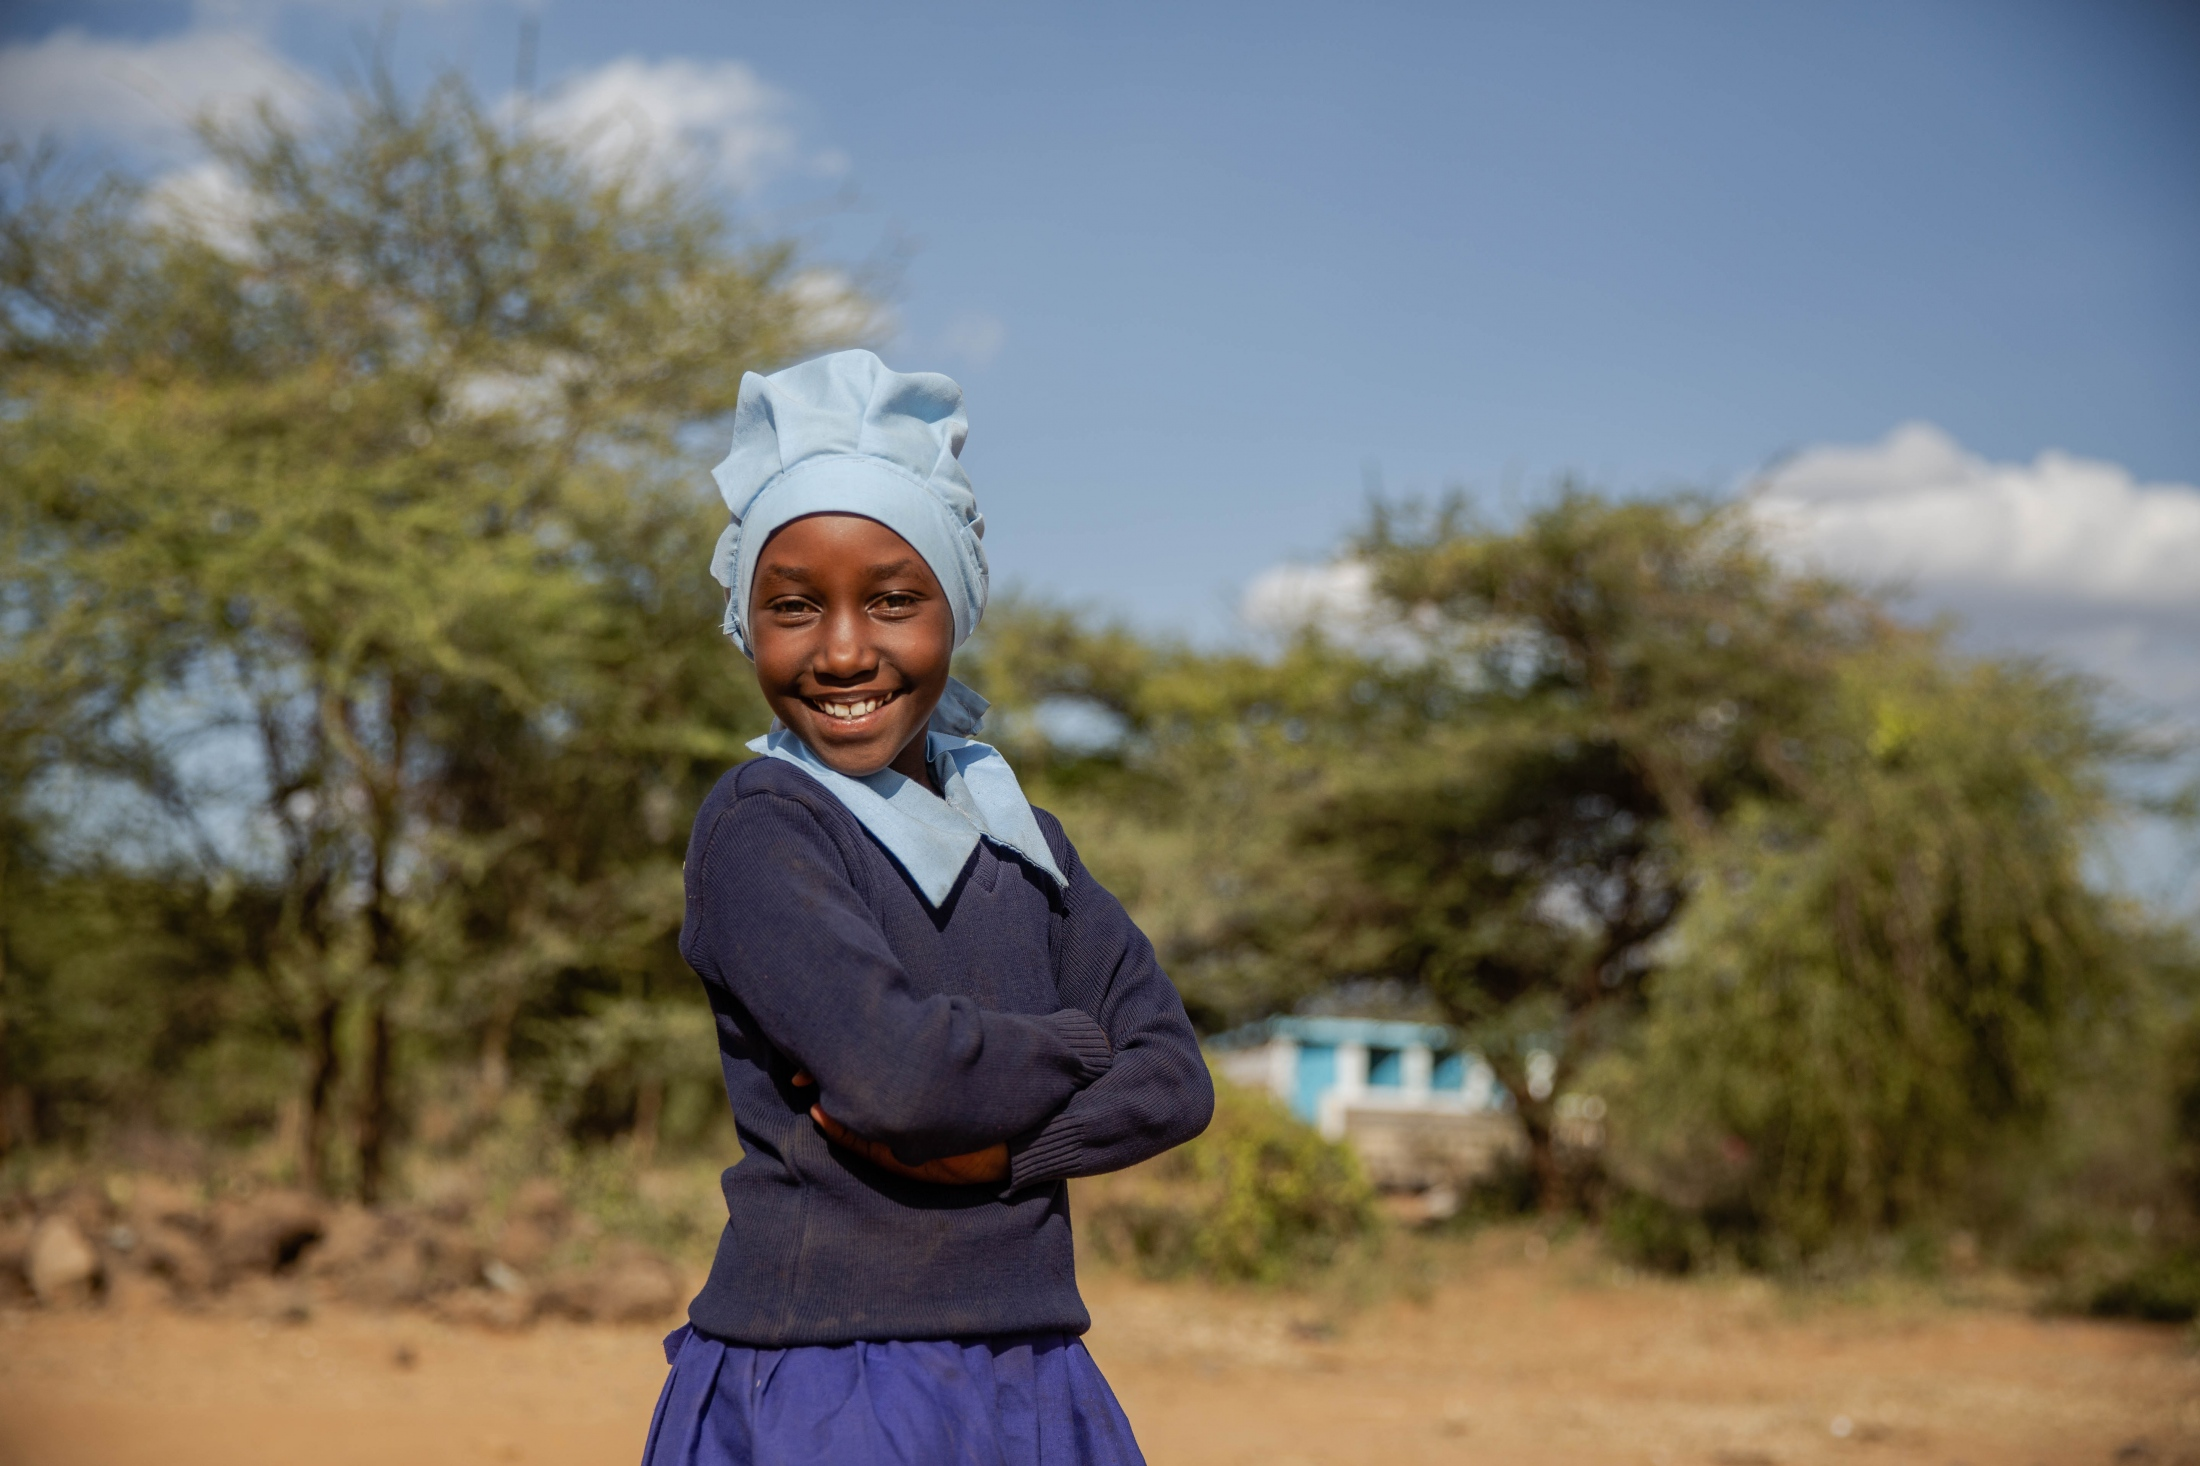 A pupil at Elangatawaus primary school in Kenya poses for a portrait. For World Relief.